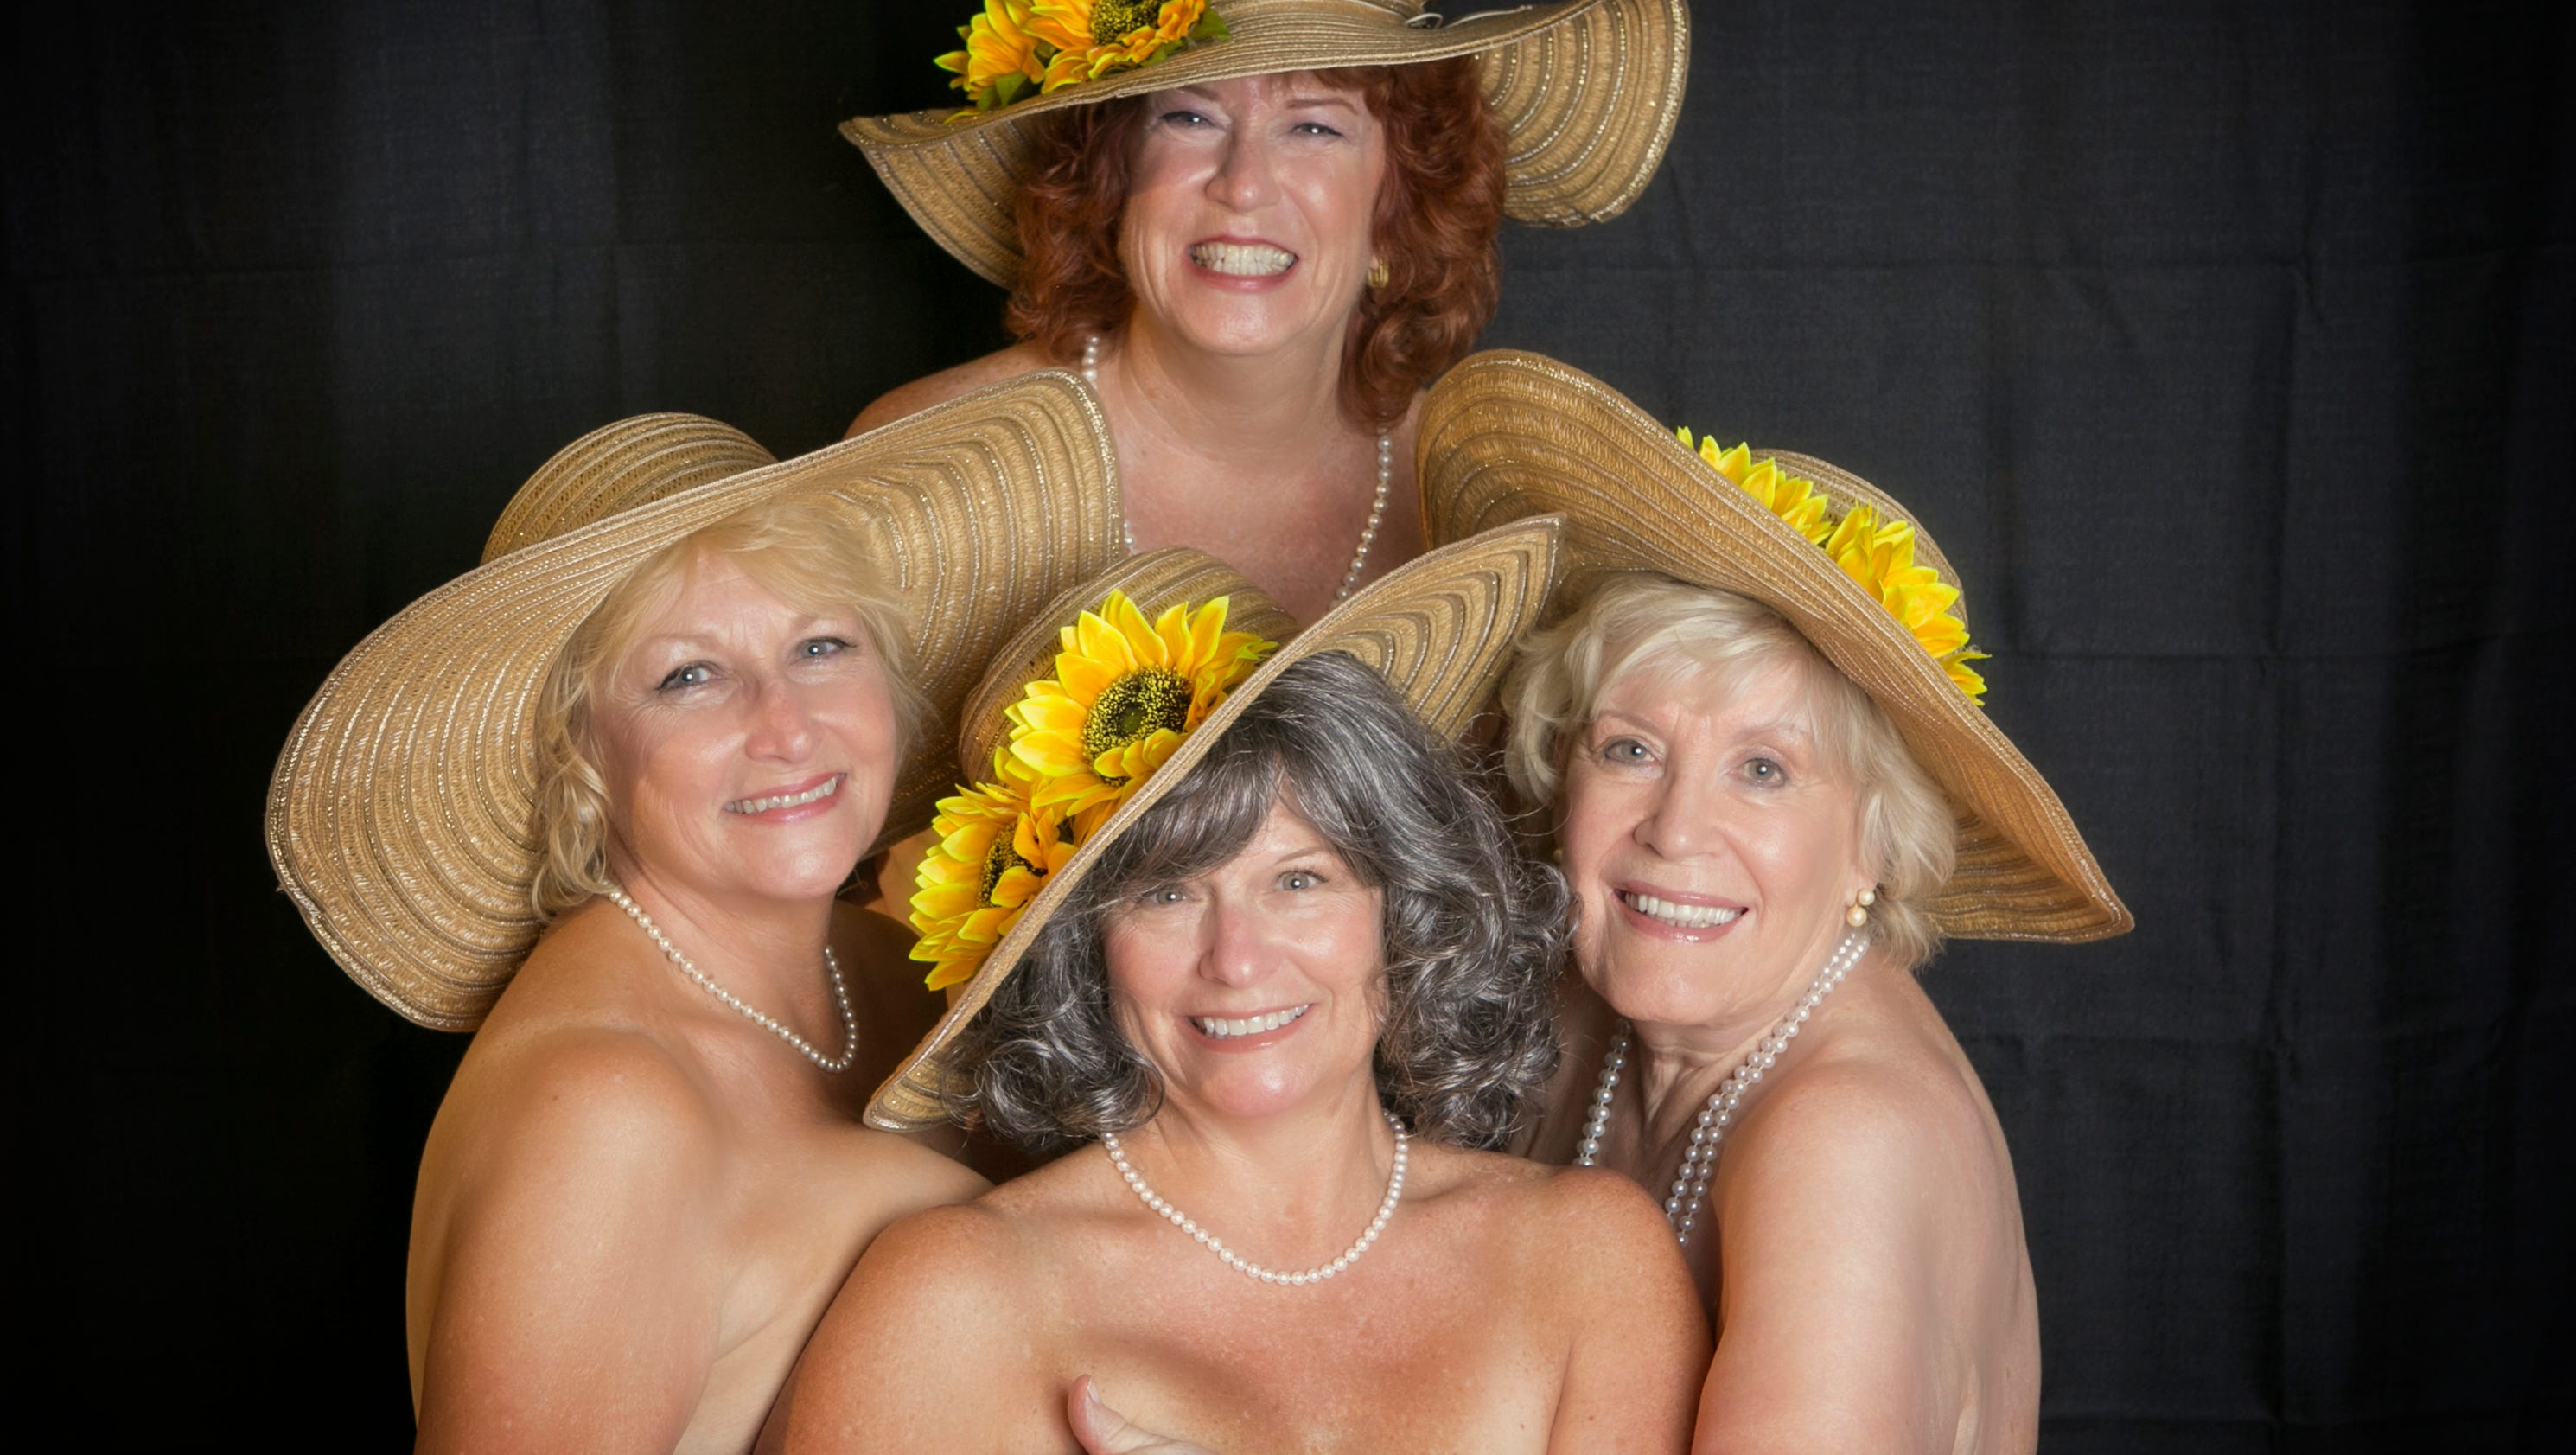 ft myer single mature ladies Meetups in fort myers these are just some of the different kinds of meetup groups you can find near fort myers  ft myers beginner soccer we're 392 .